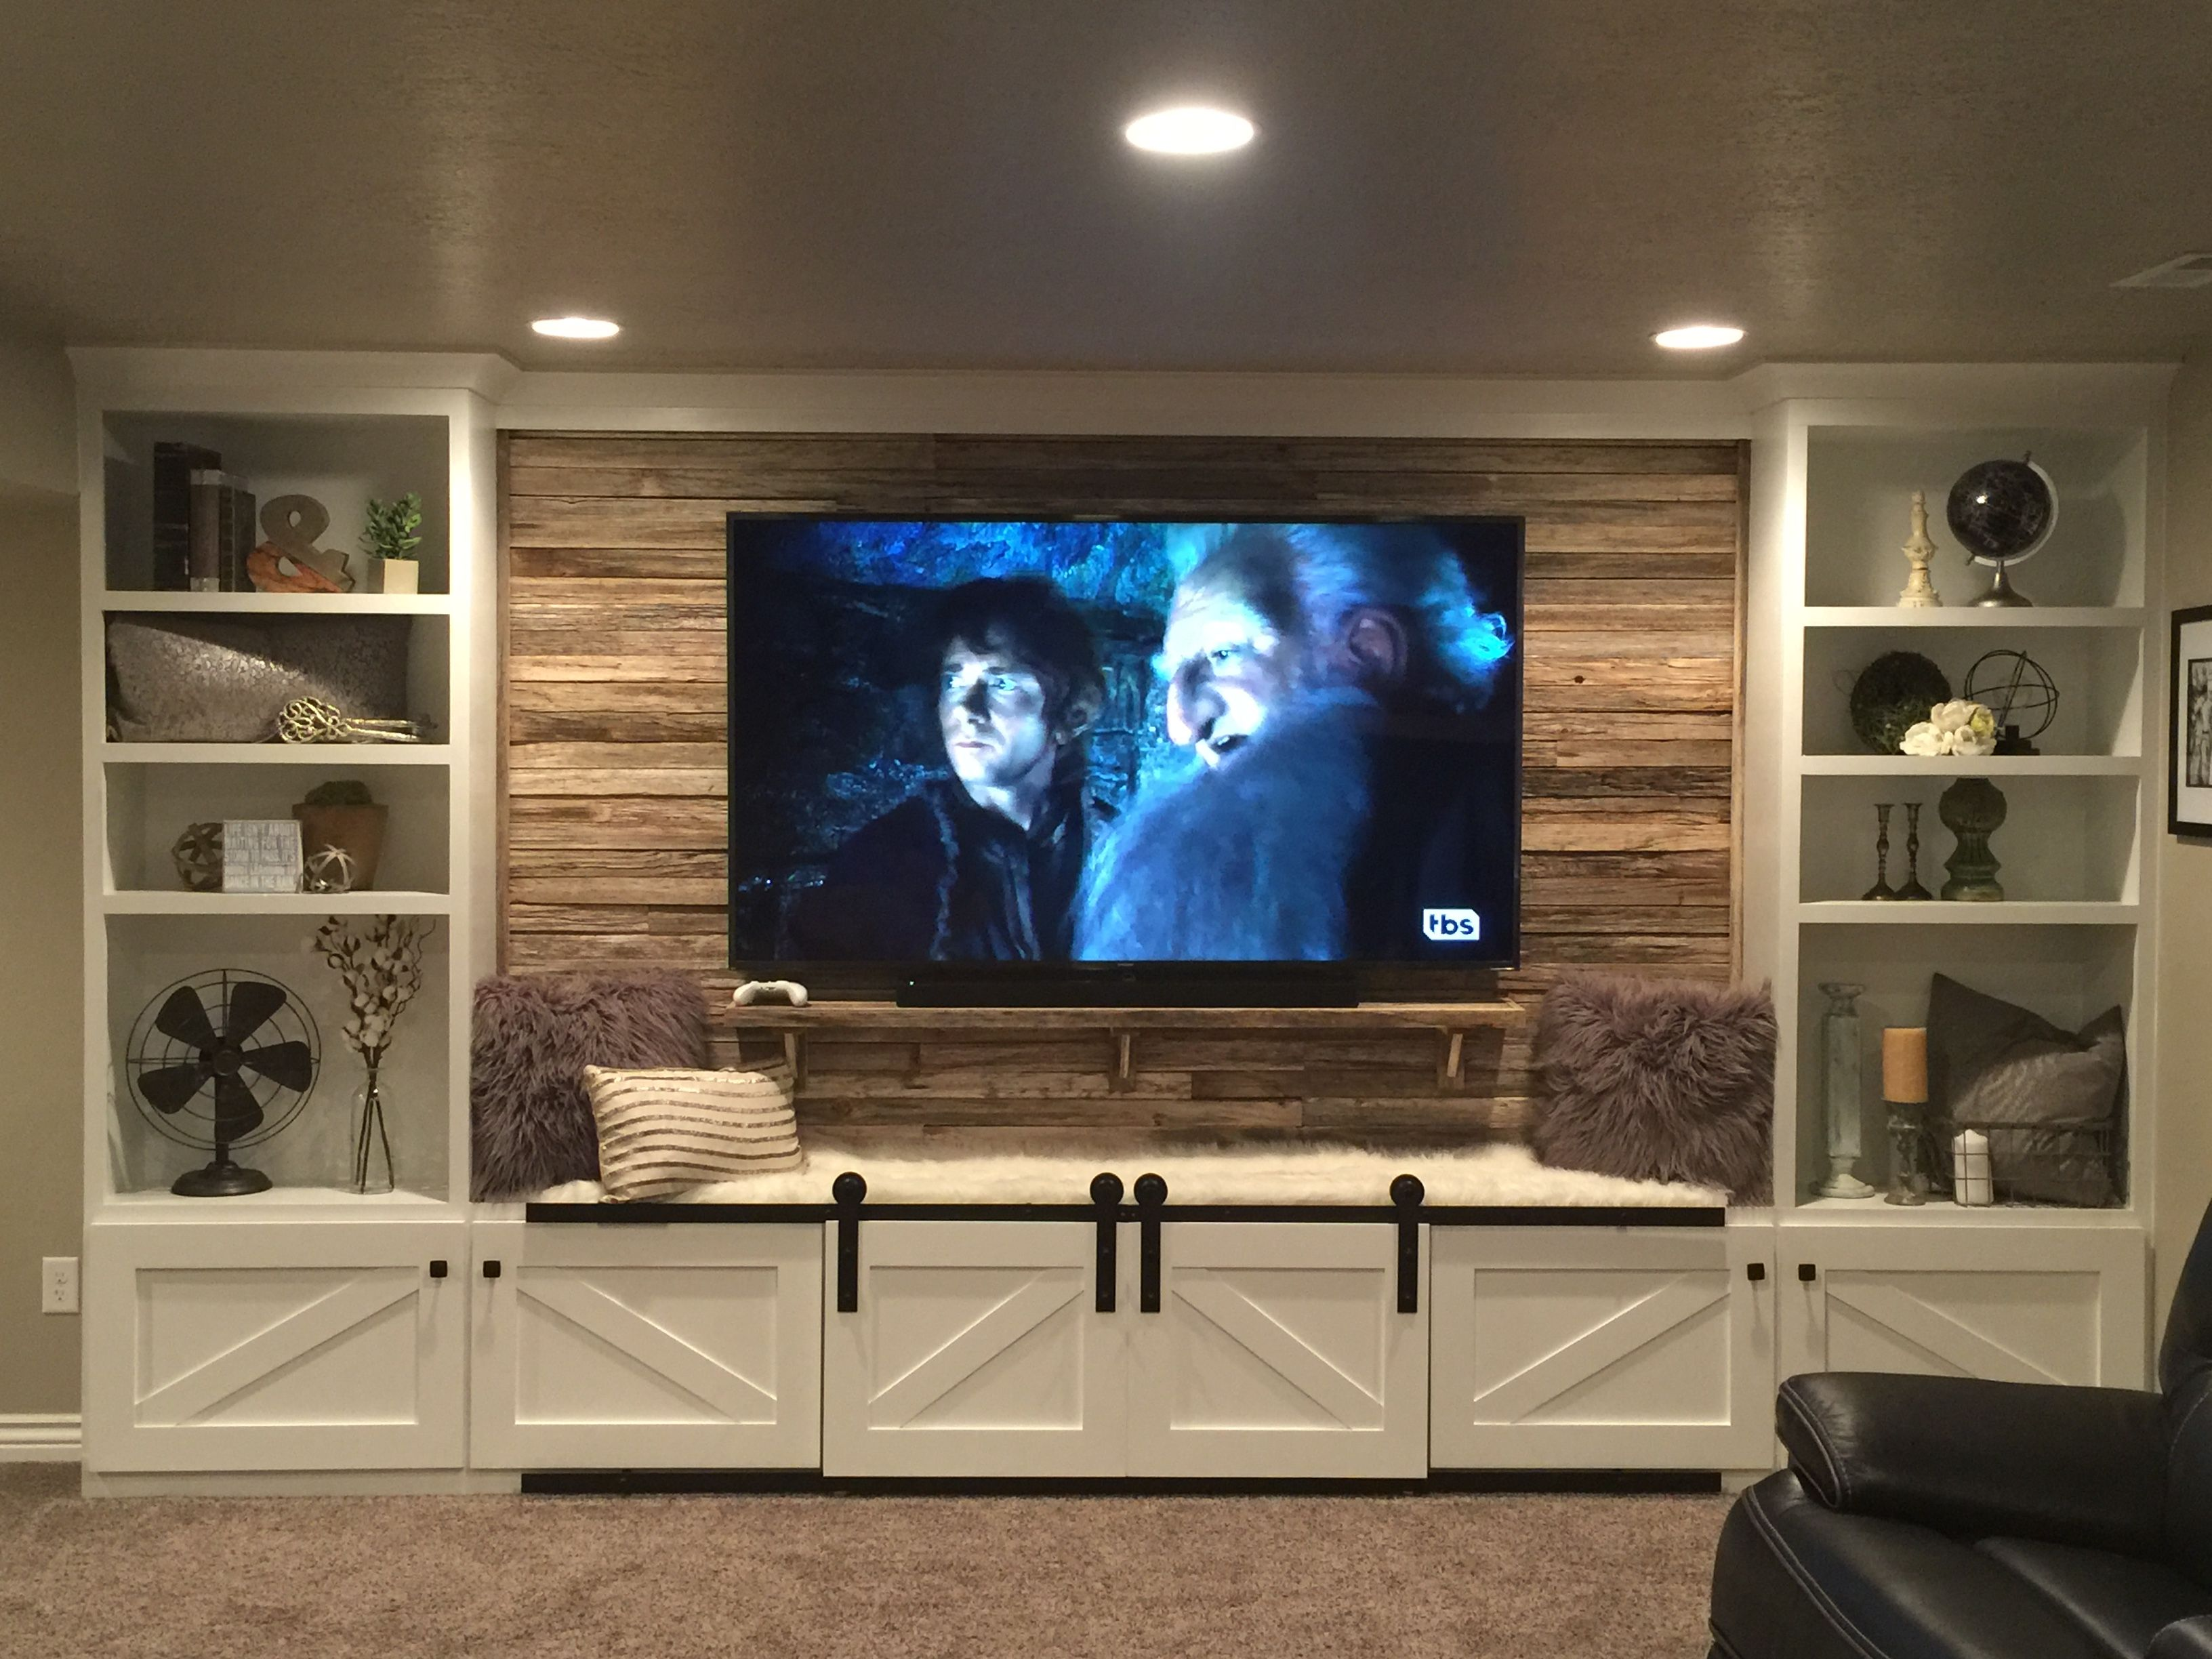 Wall Hanging Entertainment Center best 25+ diy entertainment center ideas on pinterest | diy tv